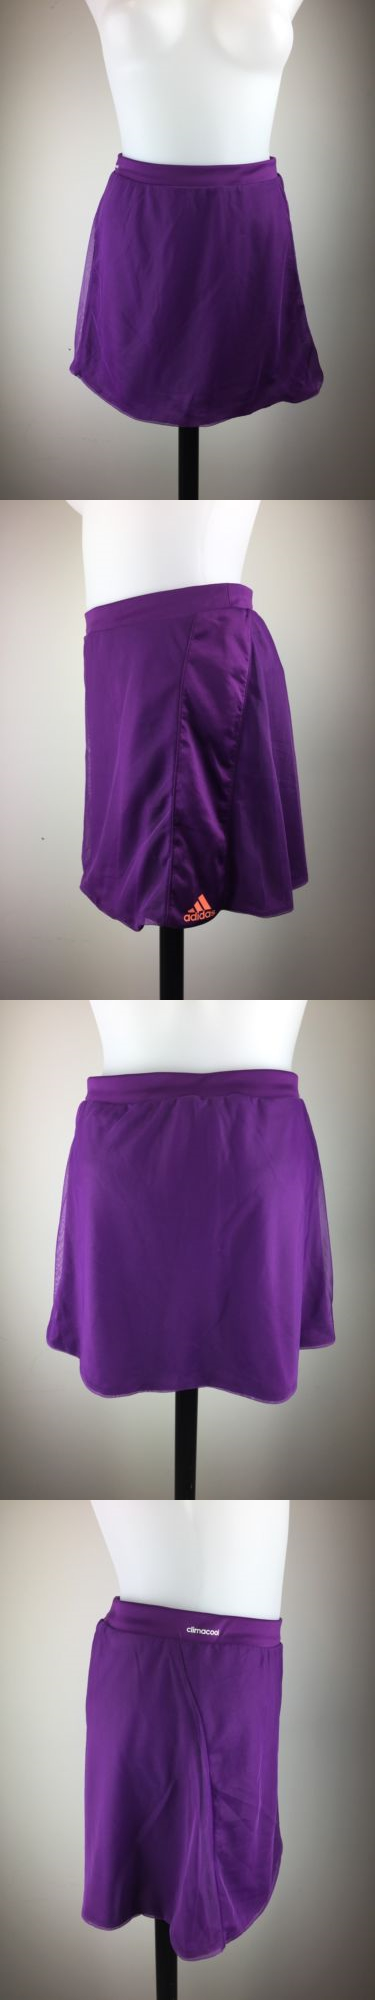 Skirts Skorts and Dresses 70901: Adidas D Adinero Skort Tennis New, Purple, Sz L Climalite, Upf 50+ Nwt -> BUY IT NOW ONLY: $32.5 on eBay!